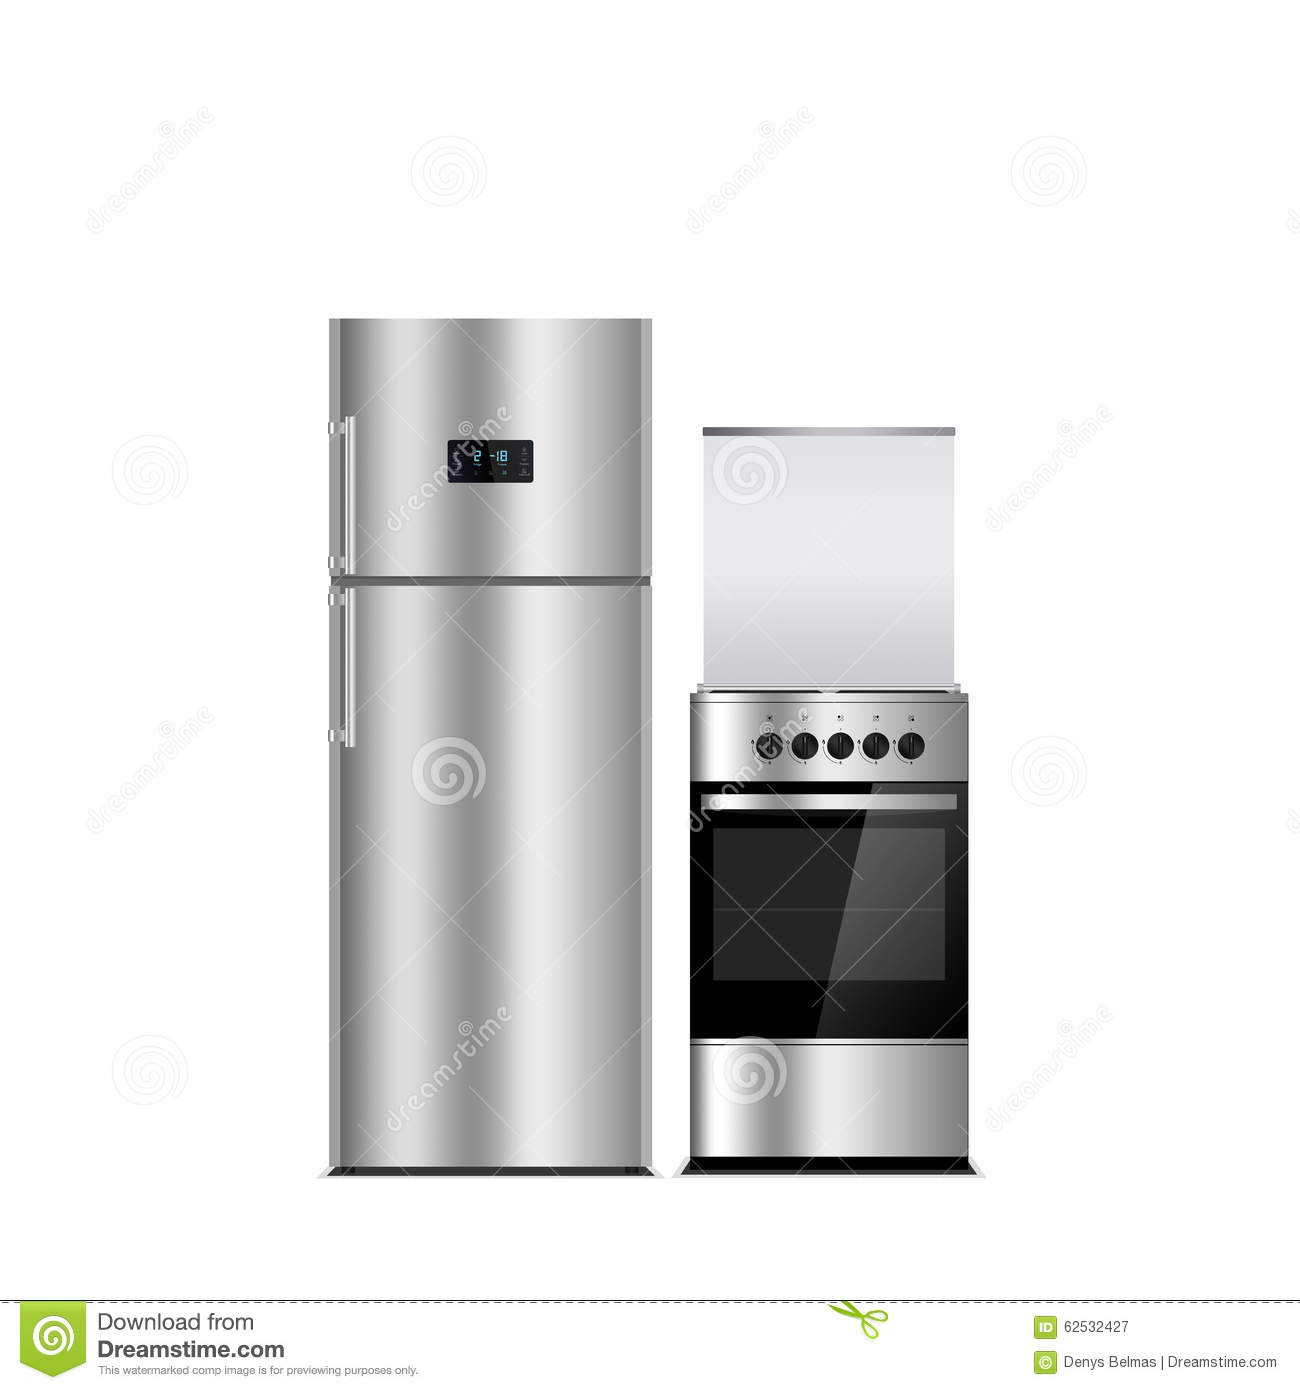 household appliances on a white background stainless steel color refrigerator and stove. Black Bedroom Furniture Sets. Home Design Ideas